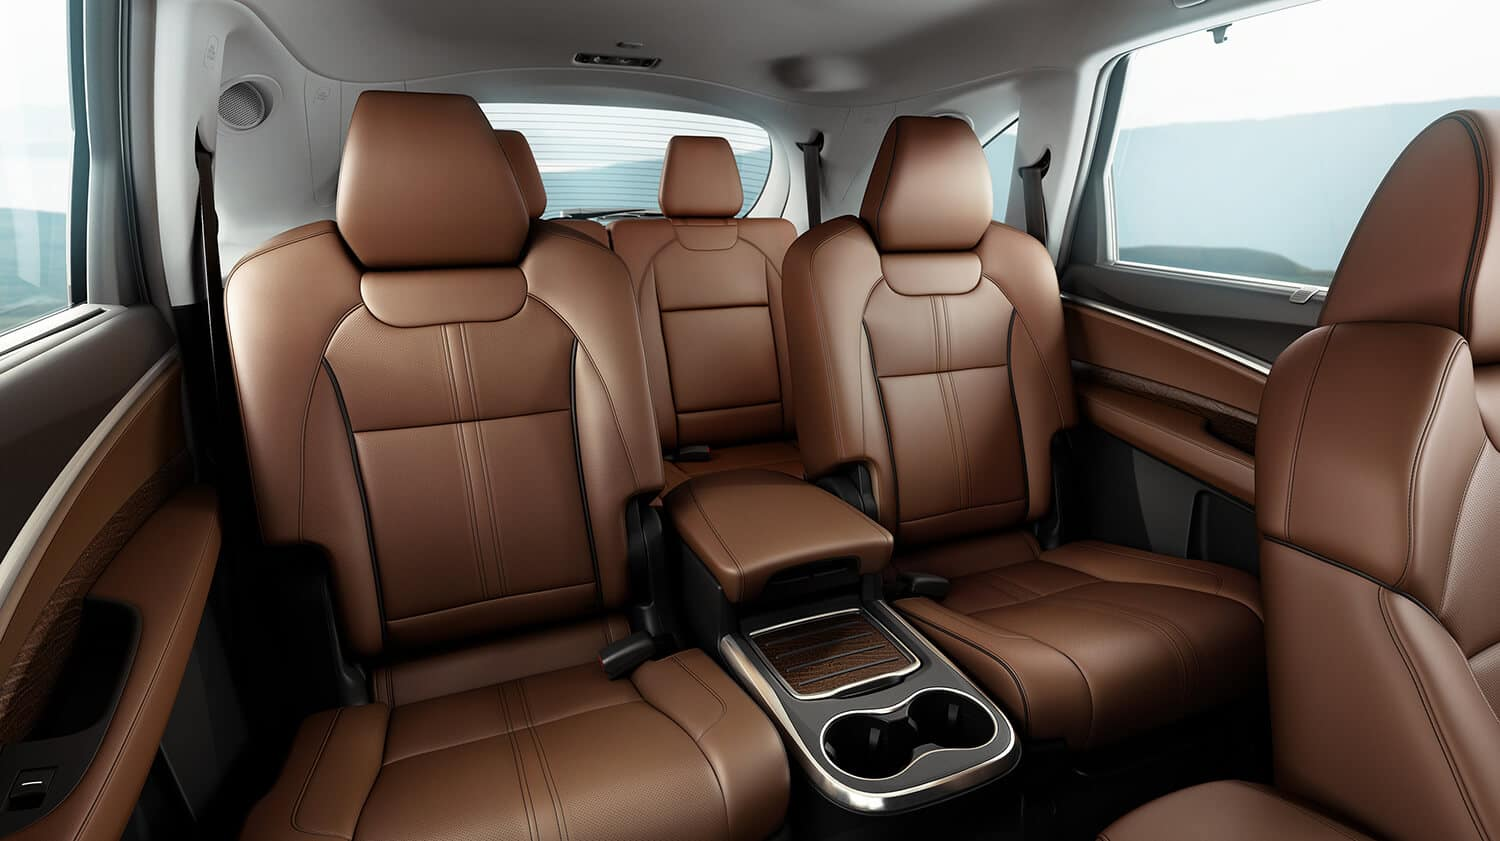 2019 Acura MDX Interior Three-Row Seating